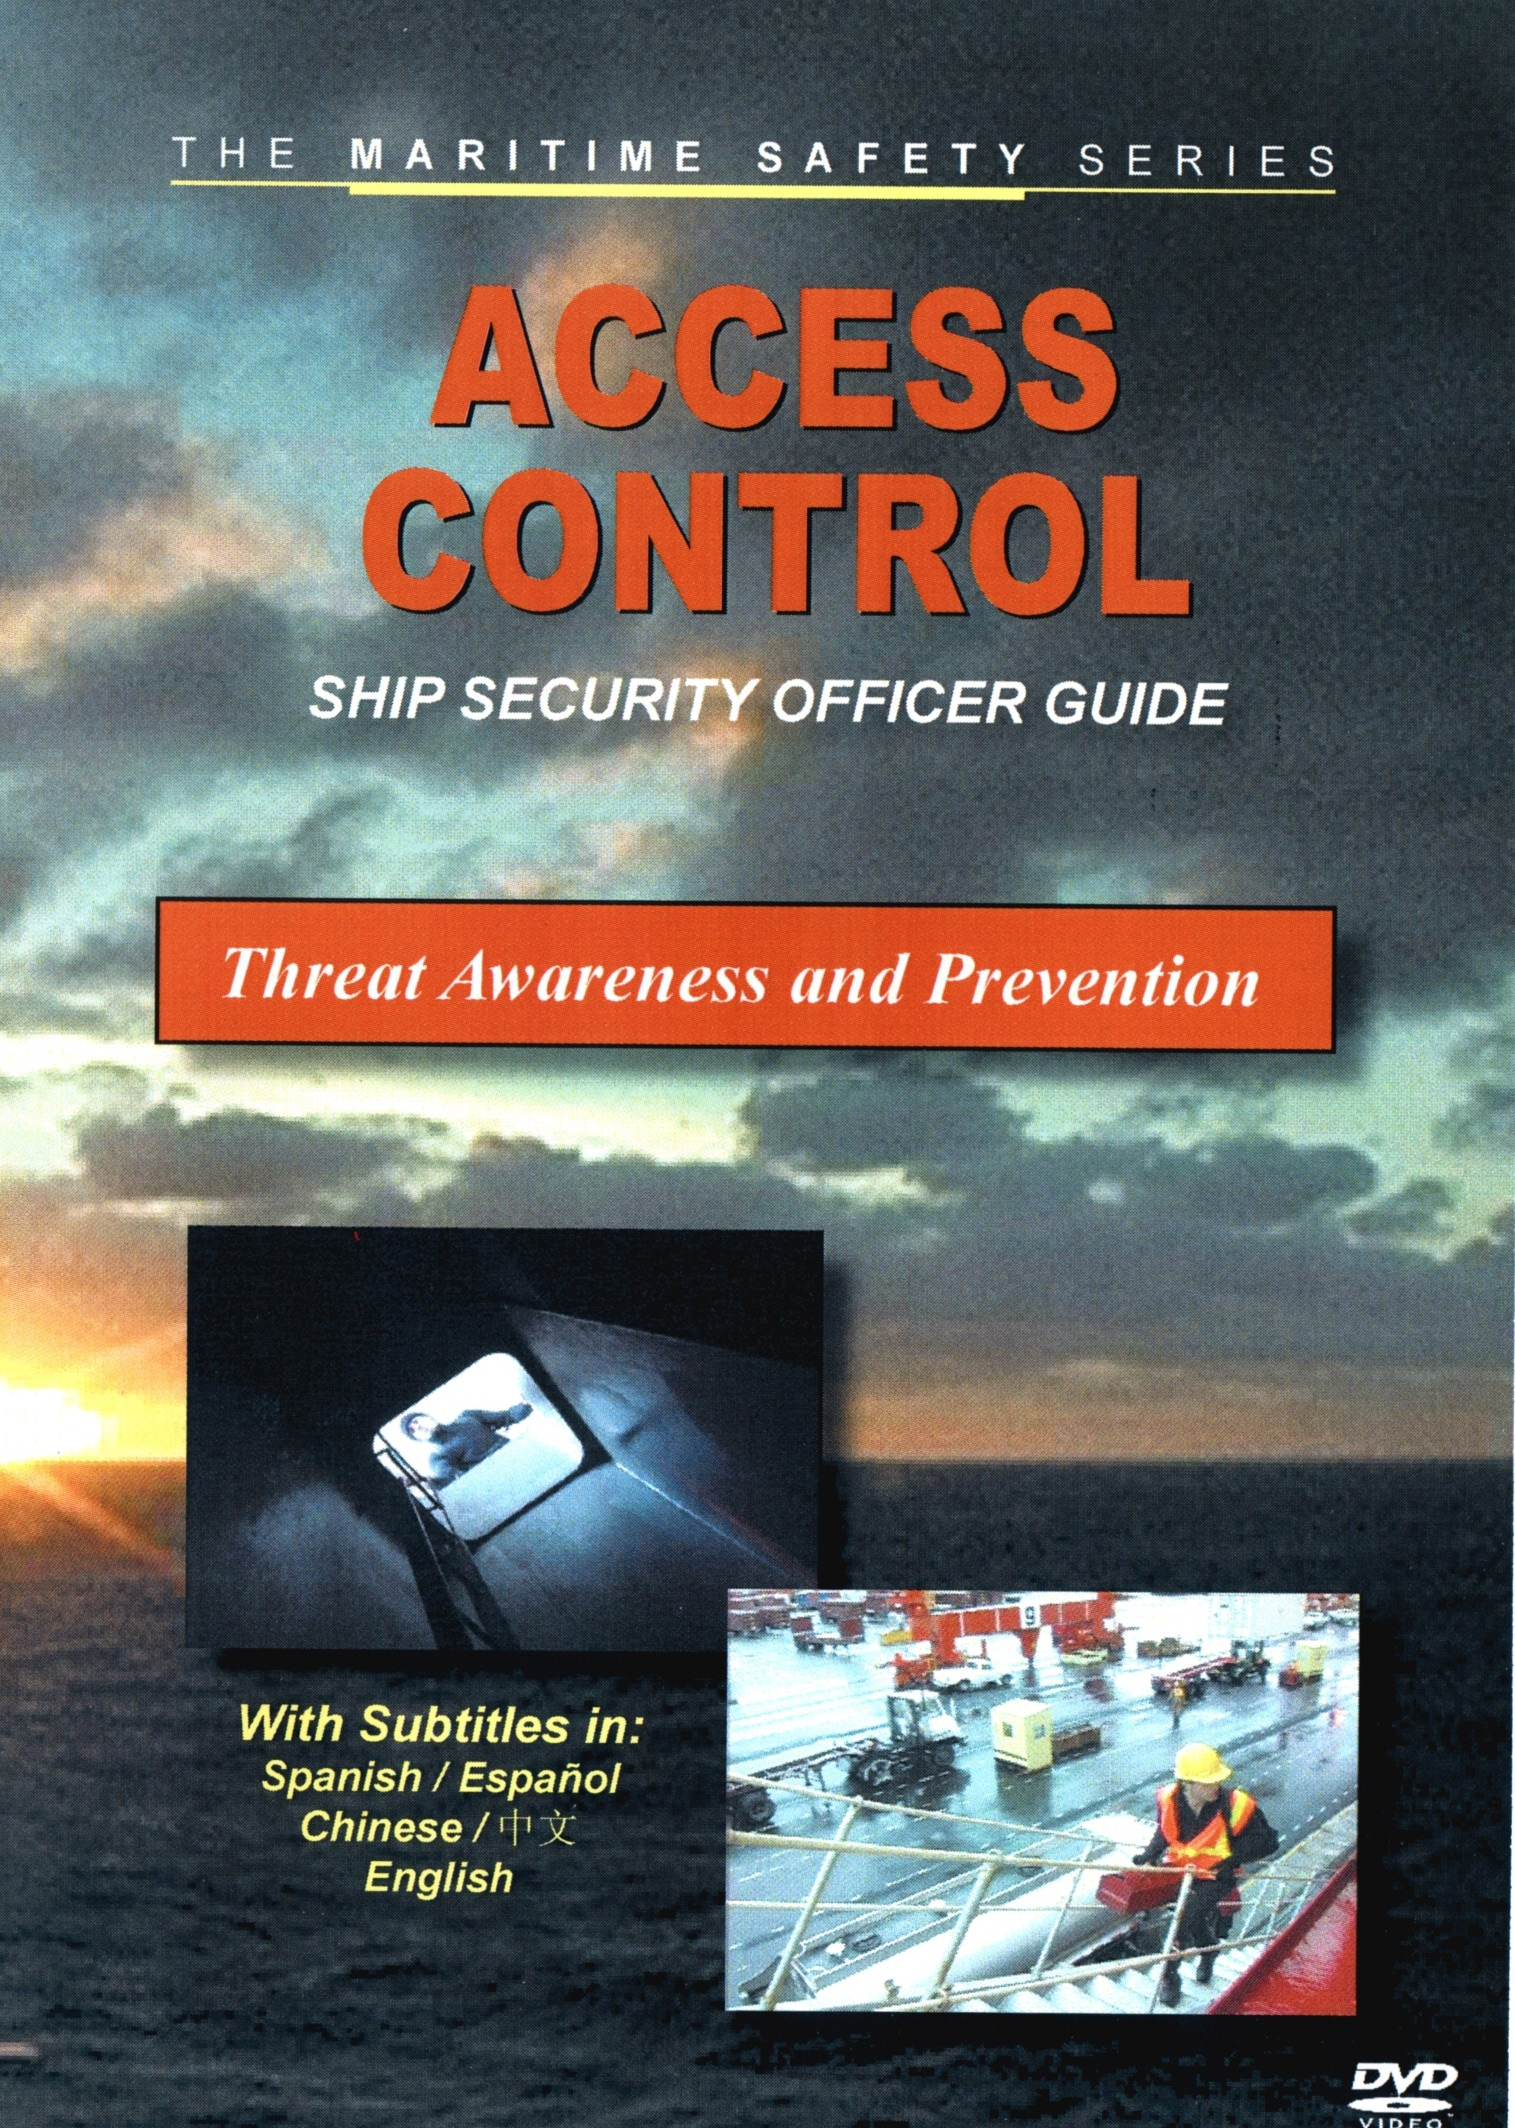 Access Control:Threat Awareness and Prevention steps